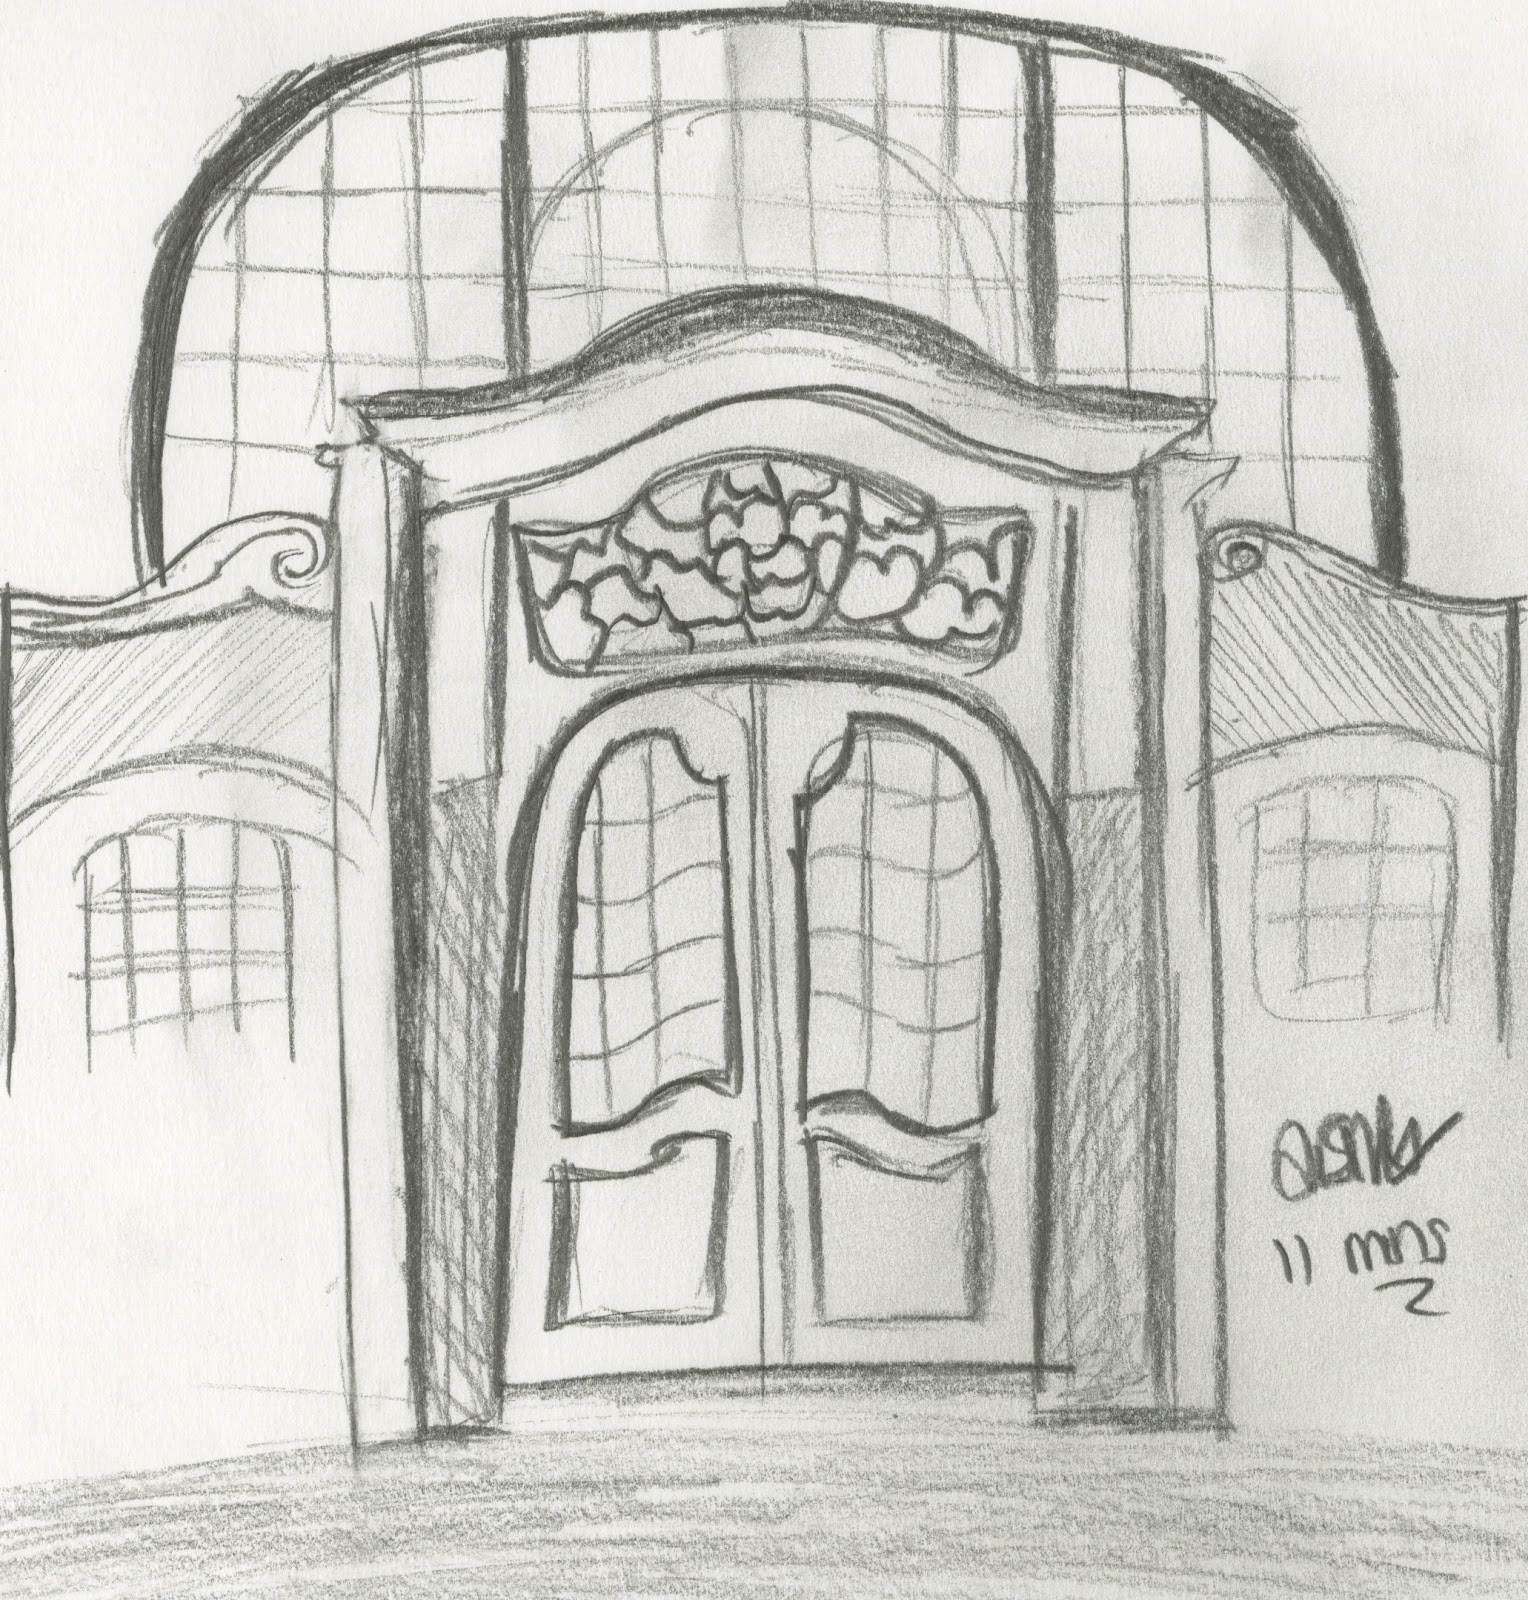 Door pencil drawing - This 11 Minute Sketch Was Drawn In An Old Church In Germany It Shows One Of The Side Doors And Was Drawn In 2b Pencil The Detail In The Window Above The